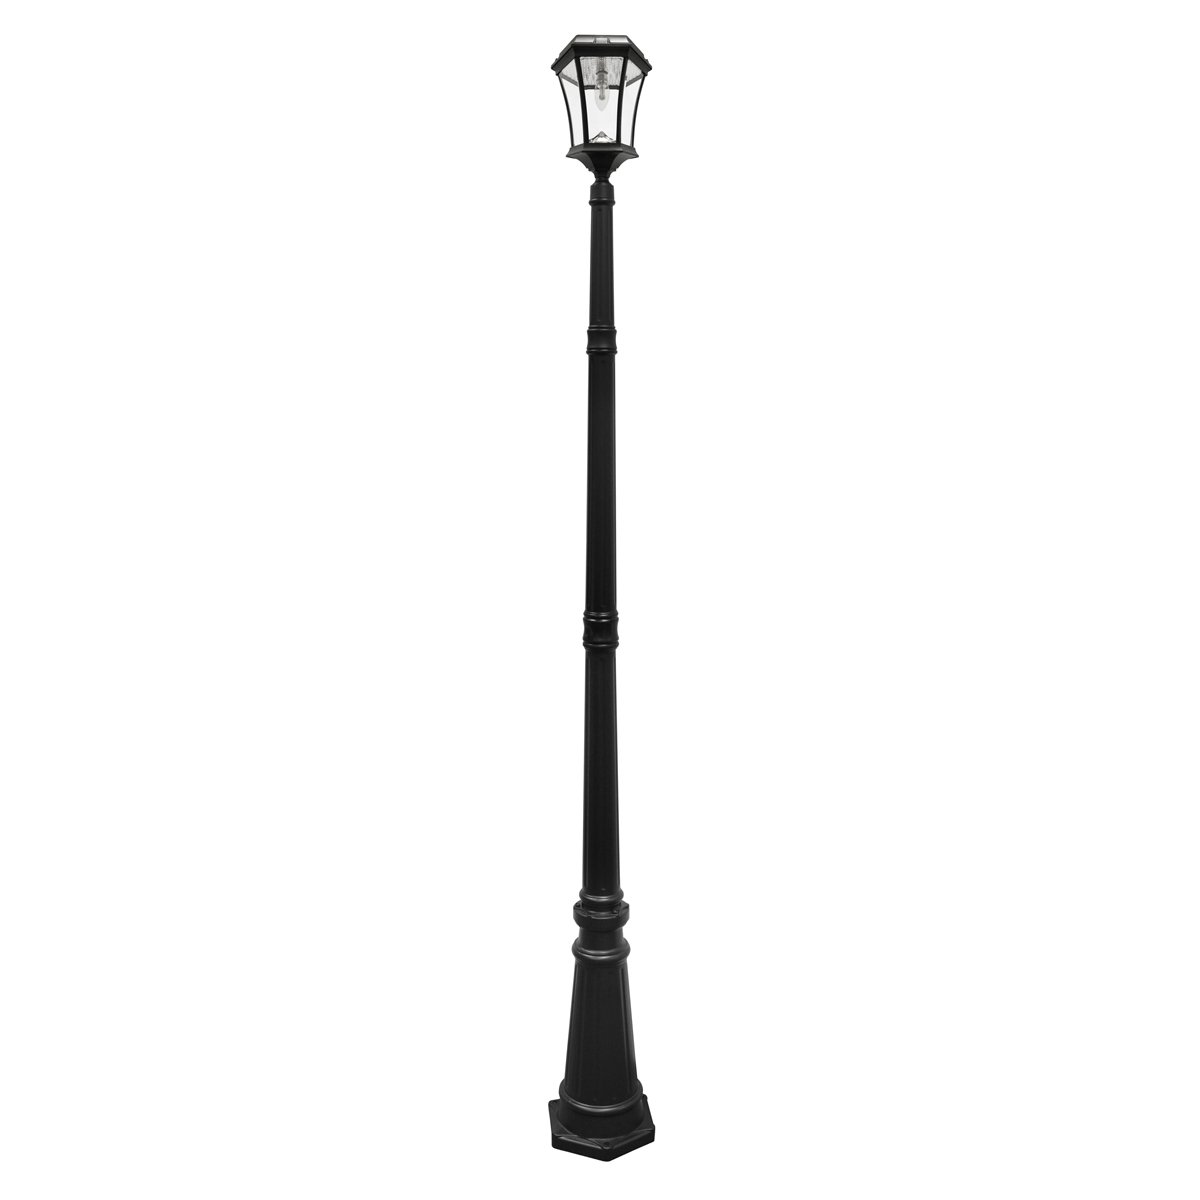 Gama Sonic Victorian Bulb Solar Outdoor Lamp Post GS-94B-S - Black Finish